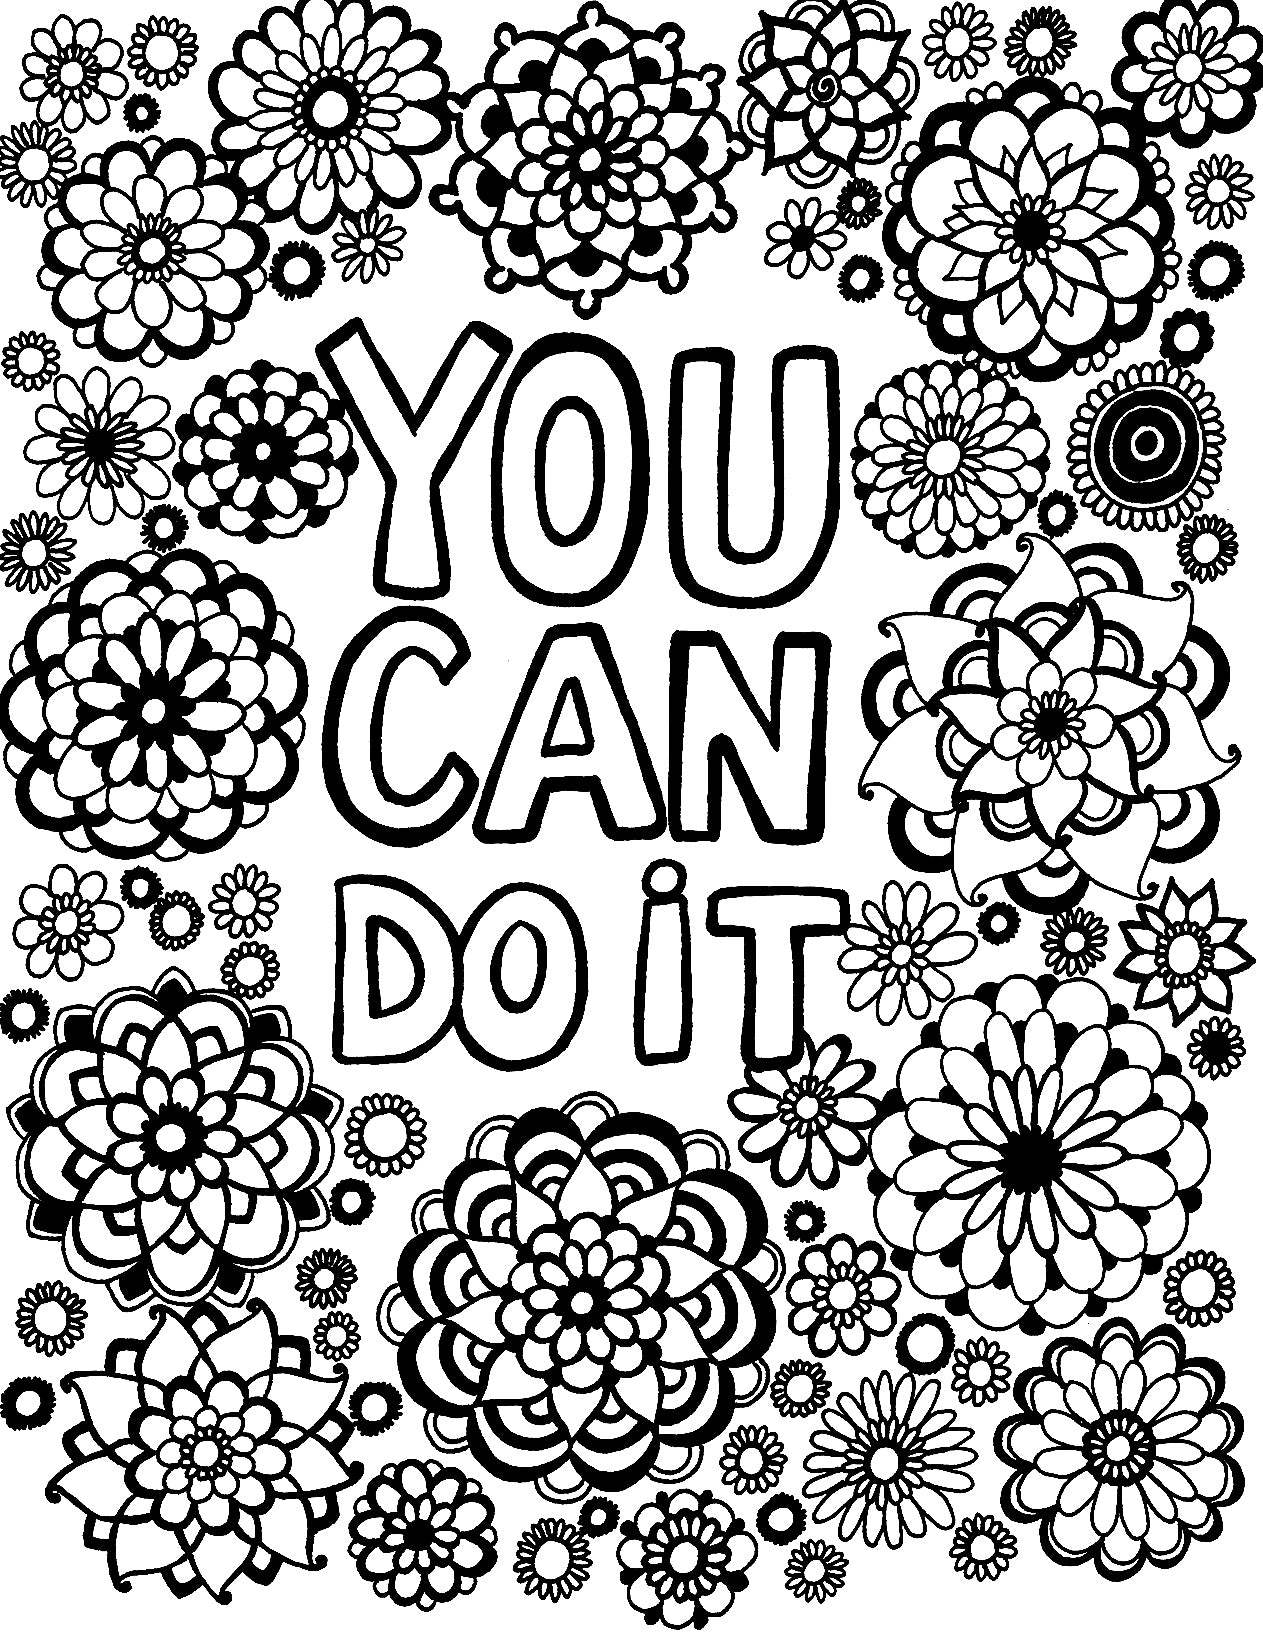 You Can Do It - You-Color